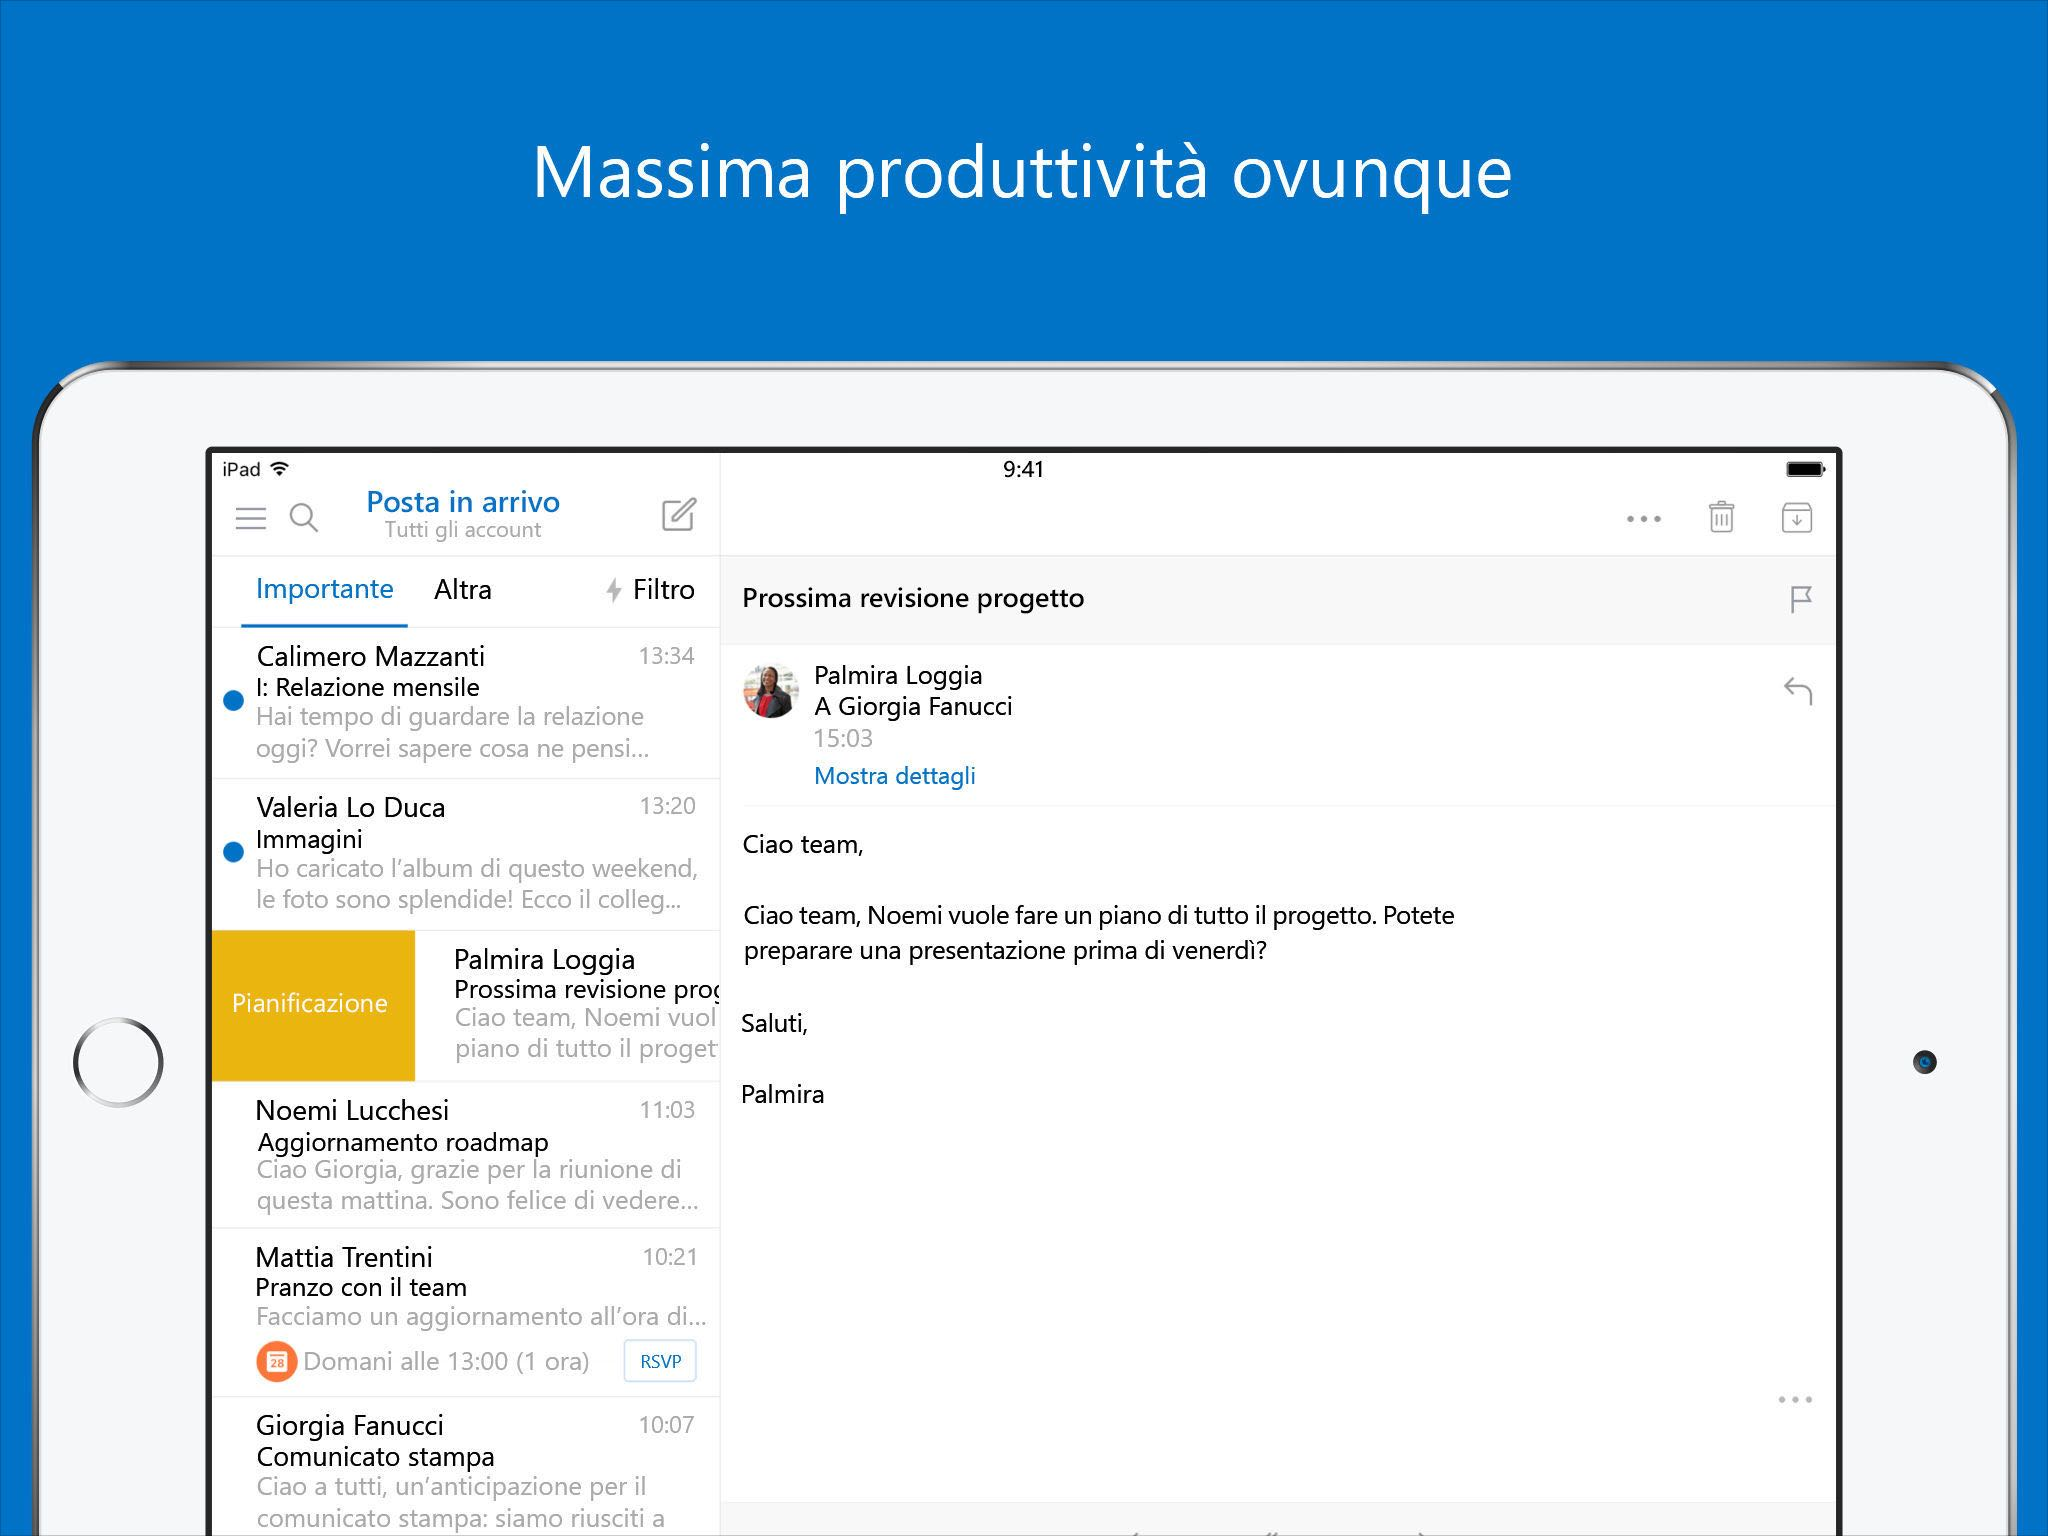 Condividere Calendario Outlook Senza Exchange.Arrivano I Calendari Condivisi Tra Ios E Android Con